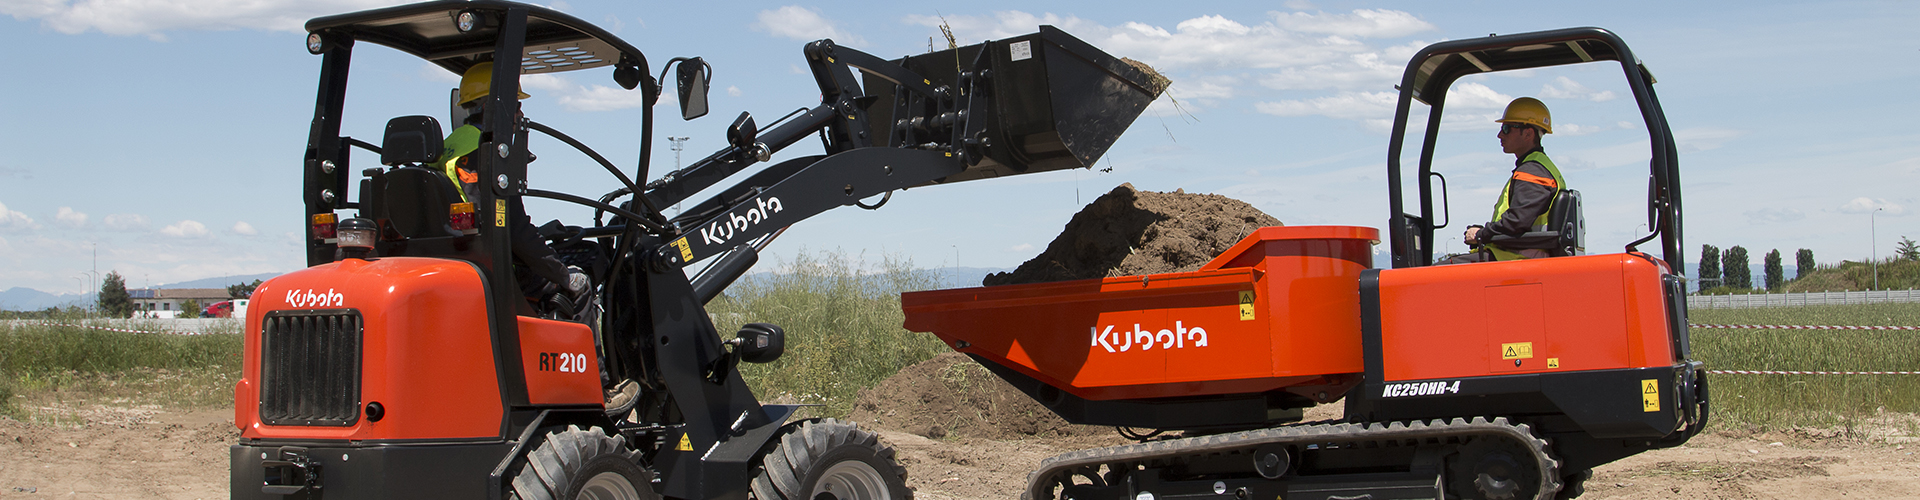 Kubota wheel loaders series